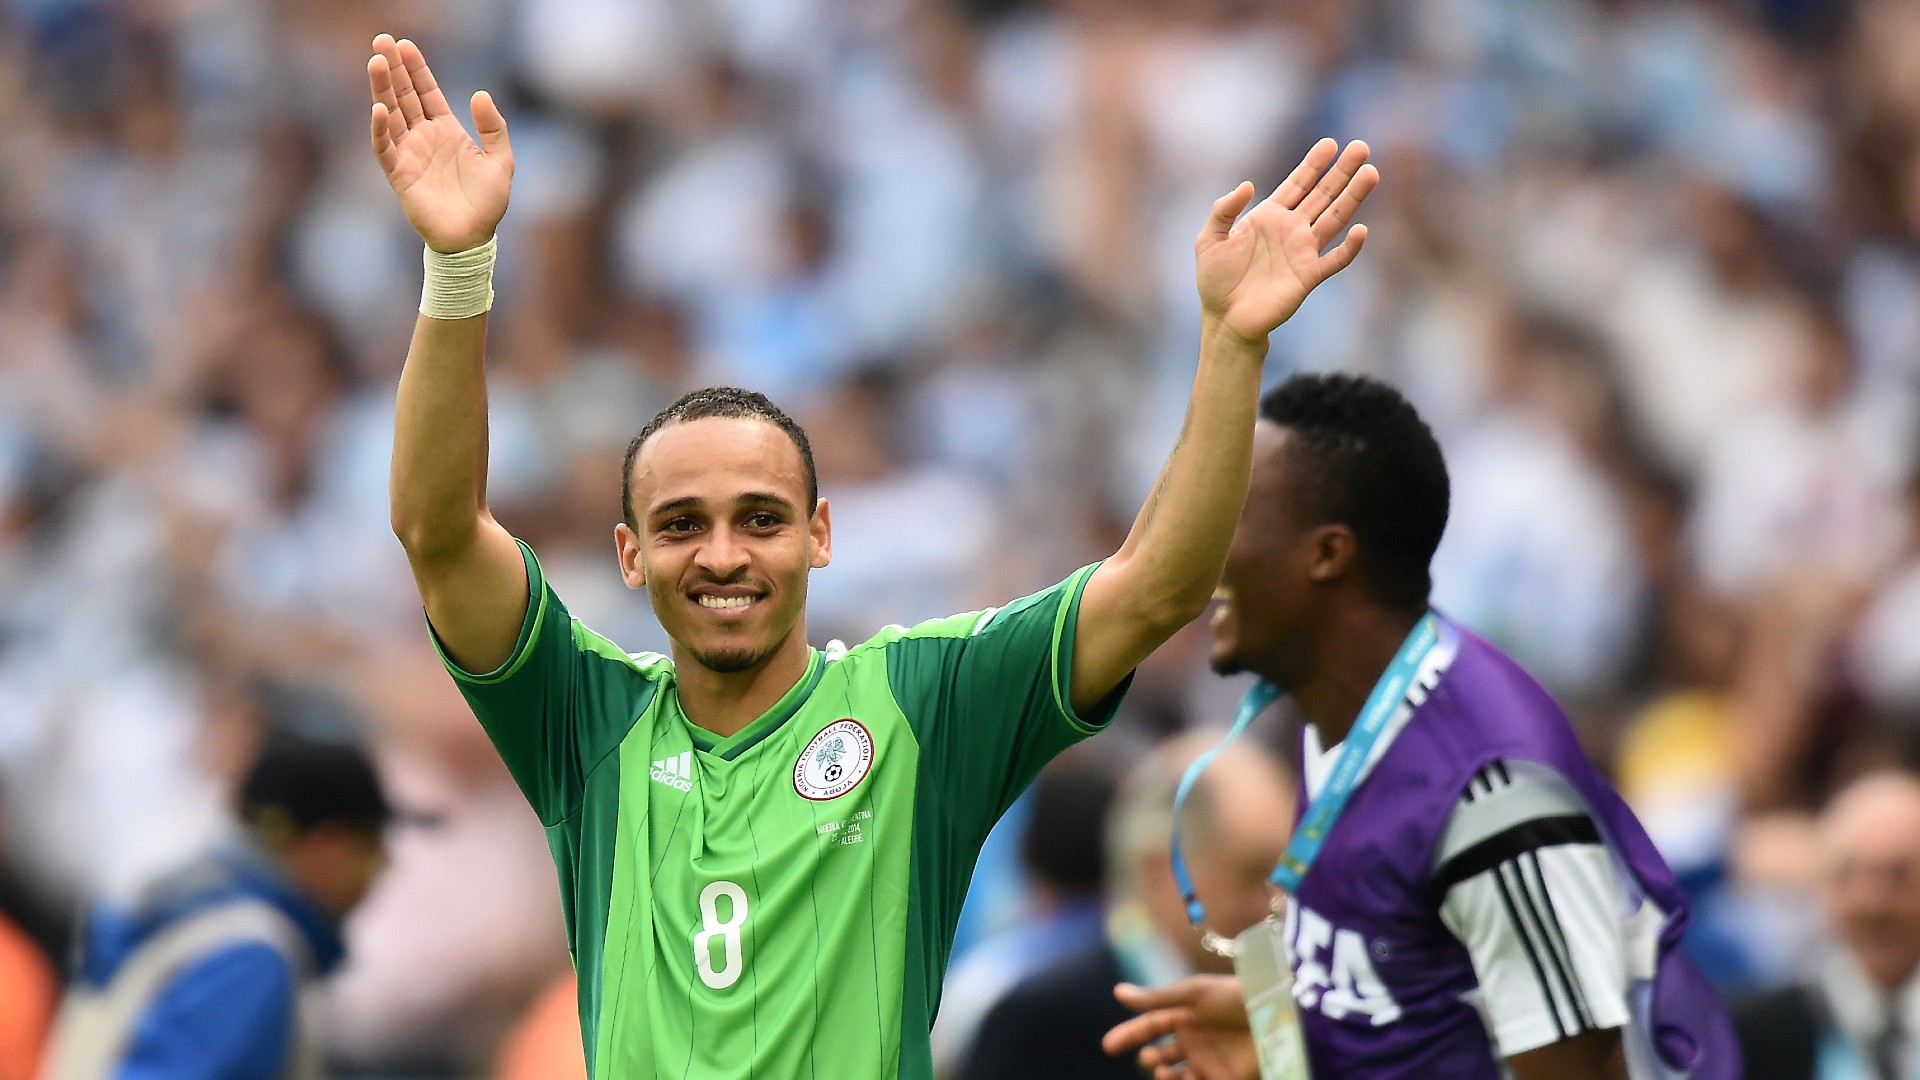 Former Nigeria winger Odemwingie to focus on his education after illustrious football career